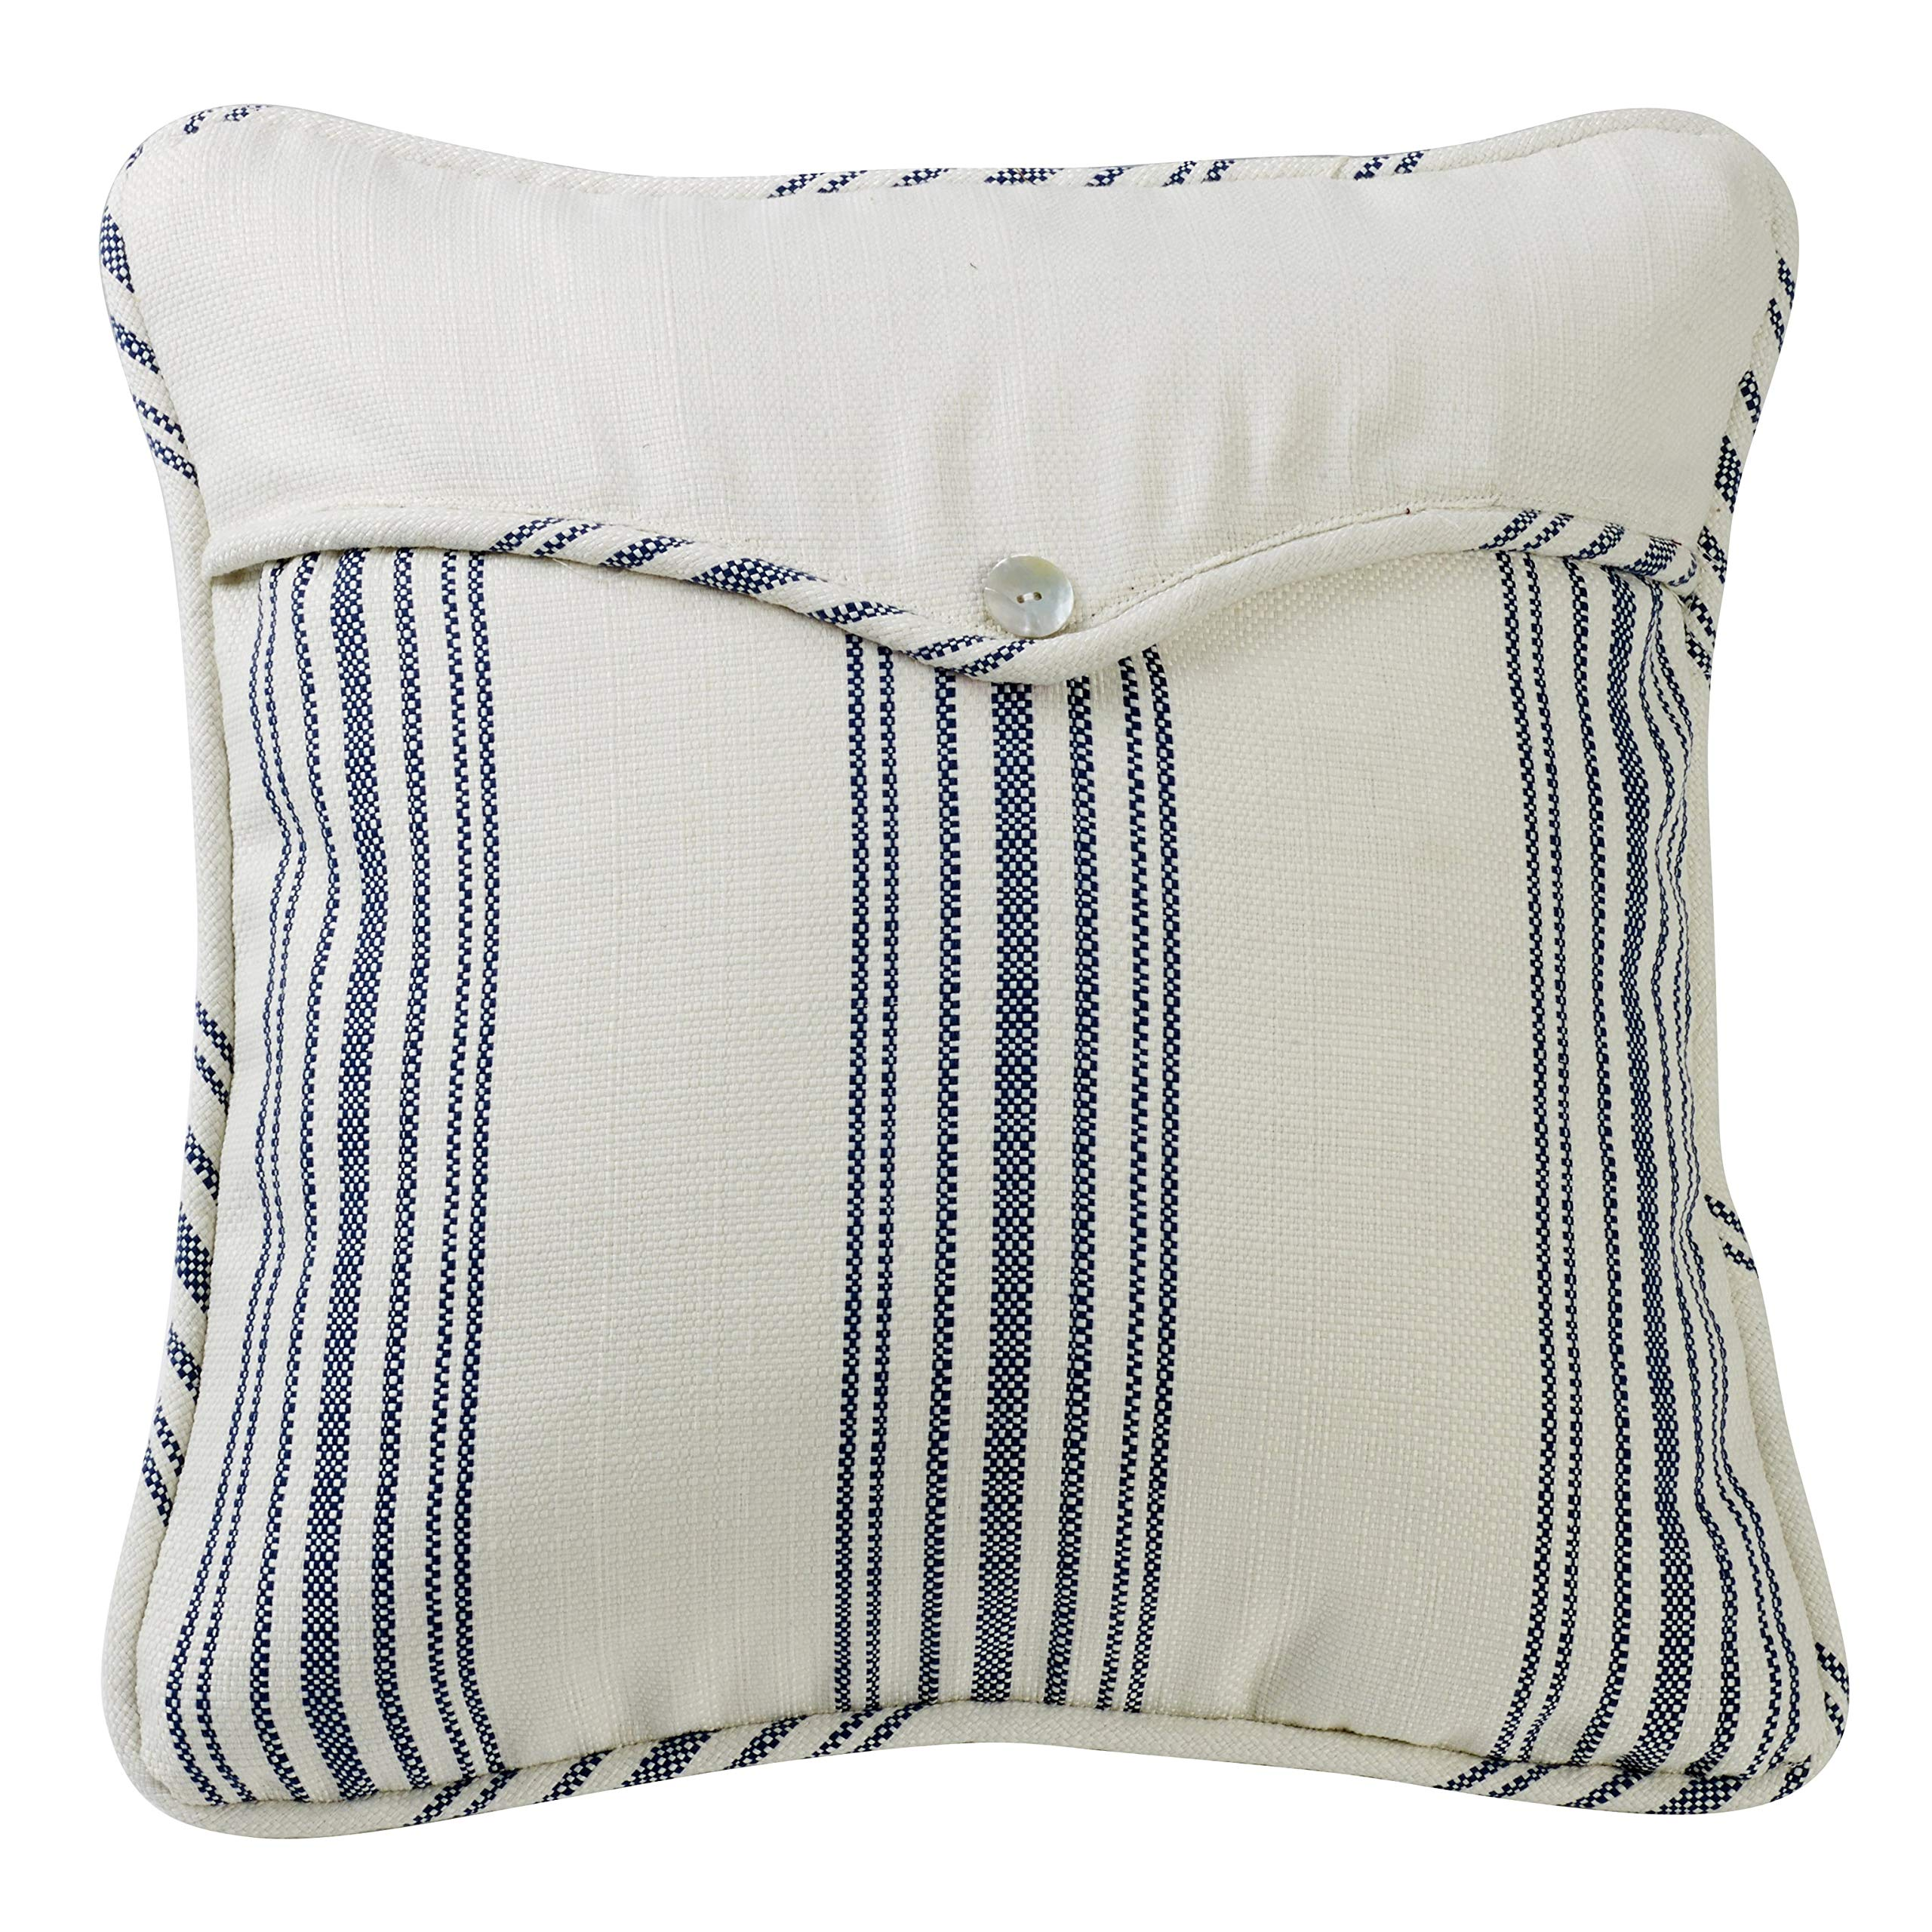 HiEnd Accents Unisex Prescott Large Pillow Red One Size